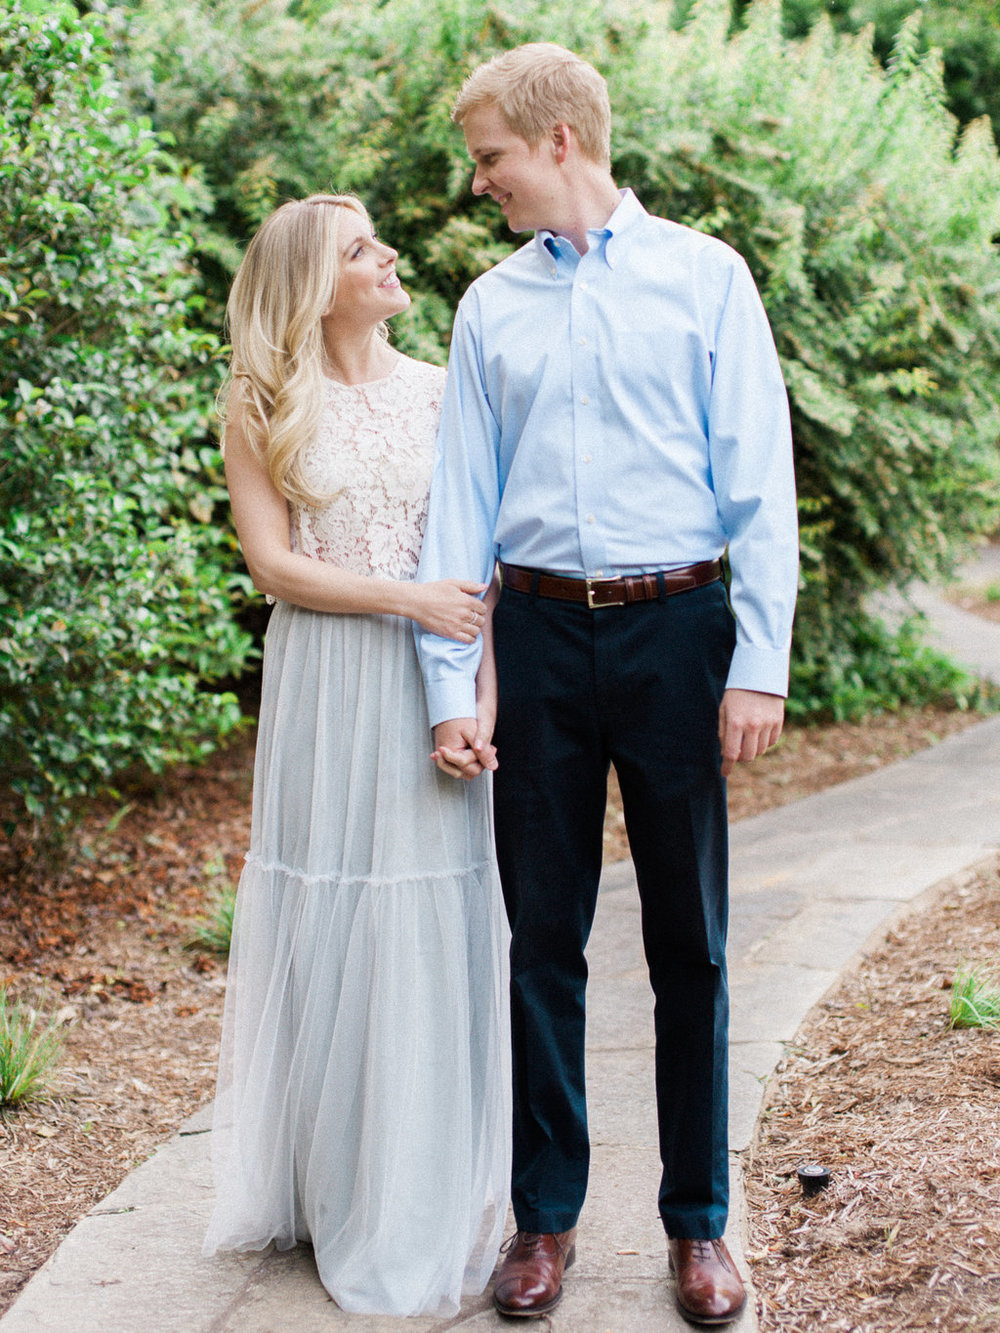 Cator-Woolford-Gardens-Engagement-atlanta-wedding-photographer-hannah-forsberg-1.jpg